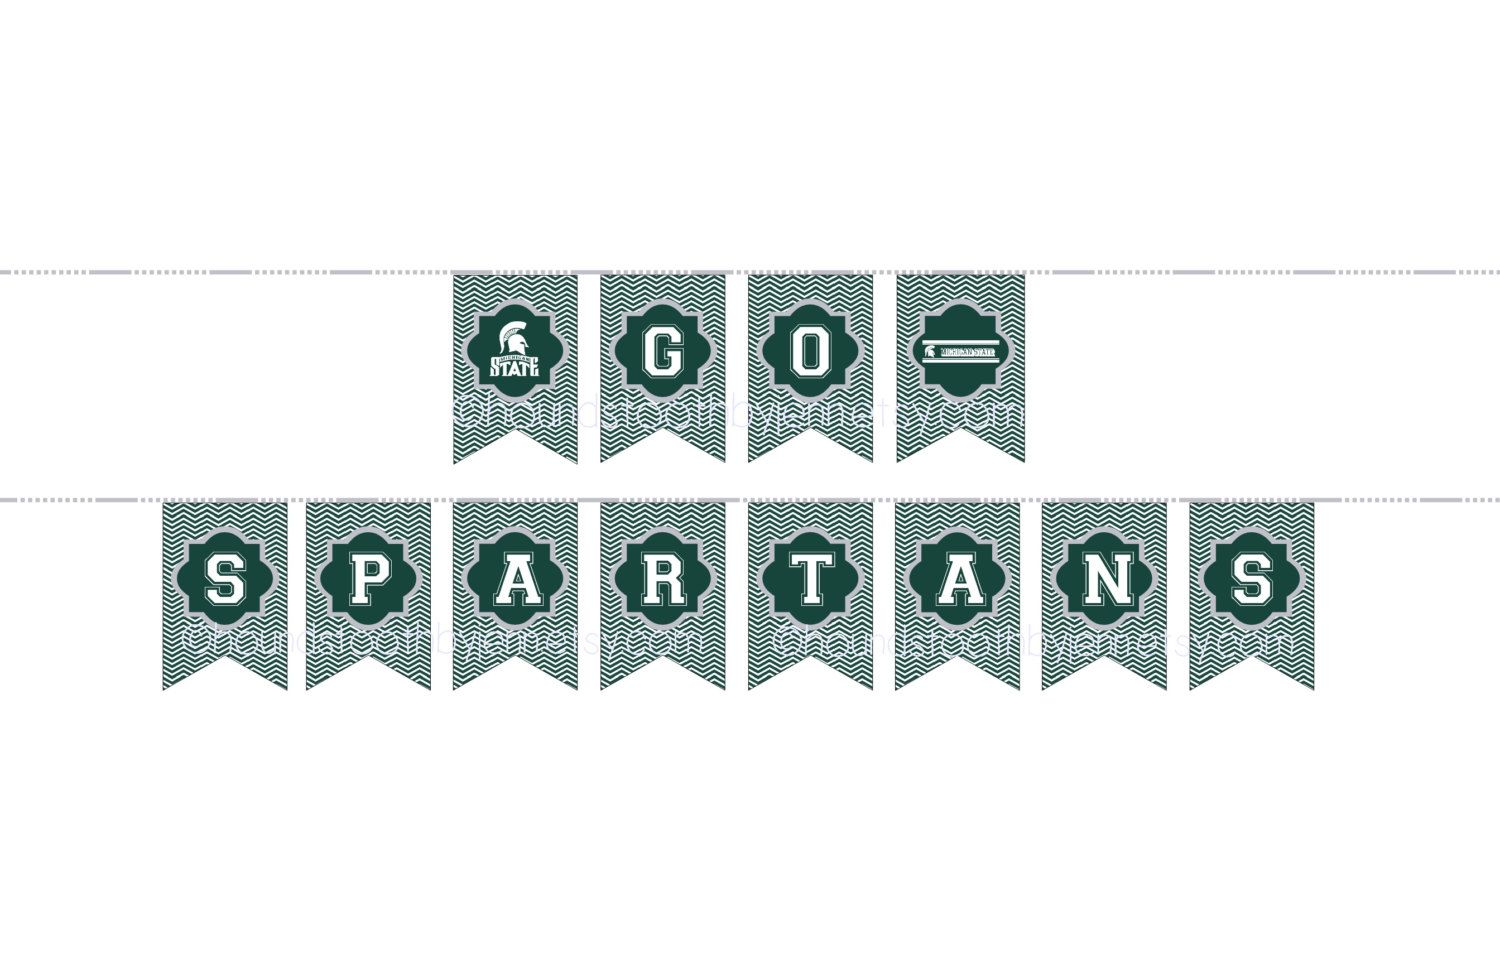 Instant Download Msu Michigan State Spartans Banner Pennants Printable Football Tailgate Par Tailgate Party Decorations Michigan State Michigan State Spartans